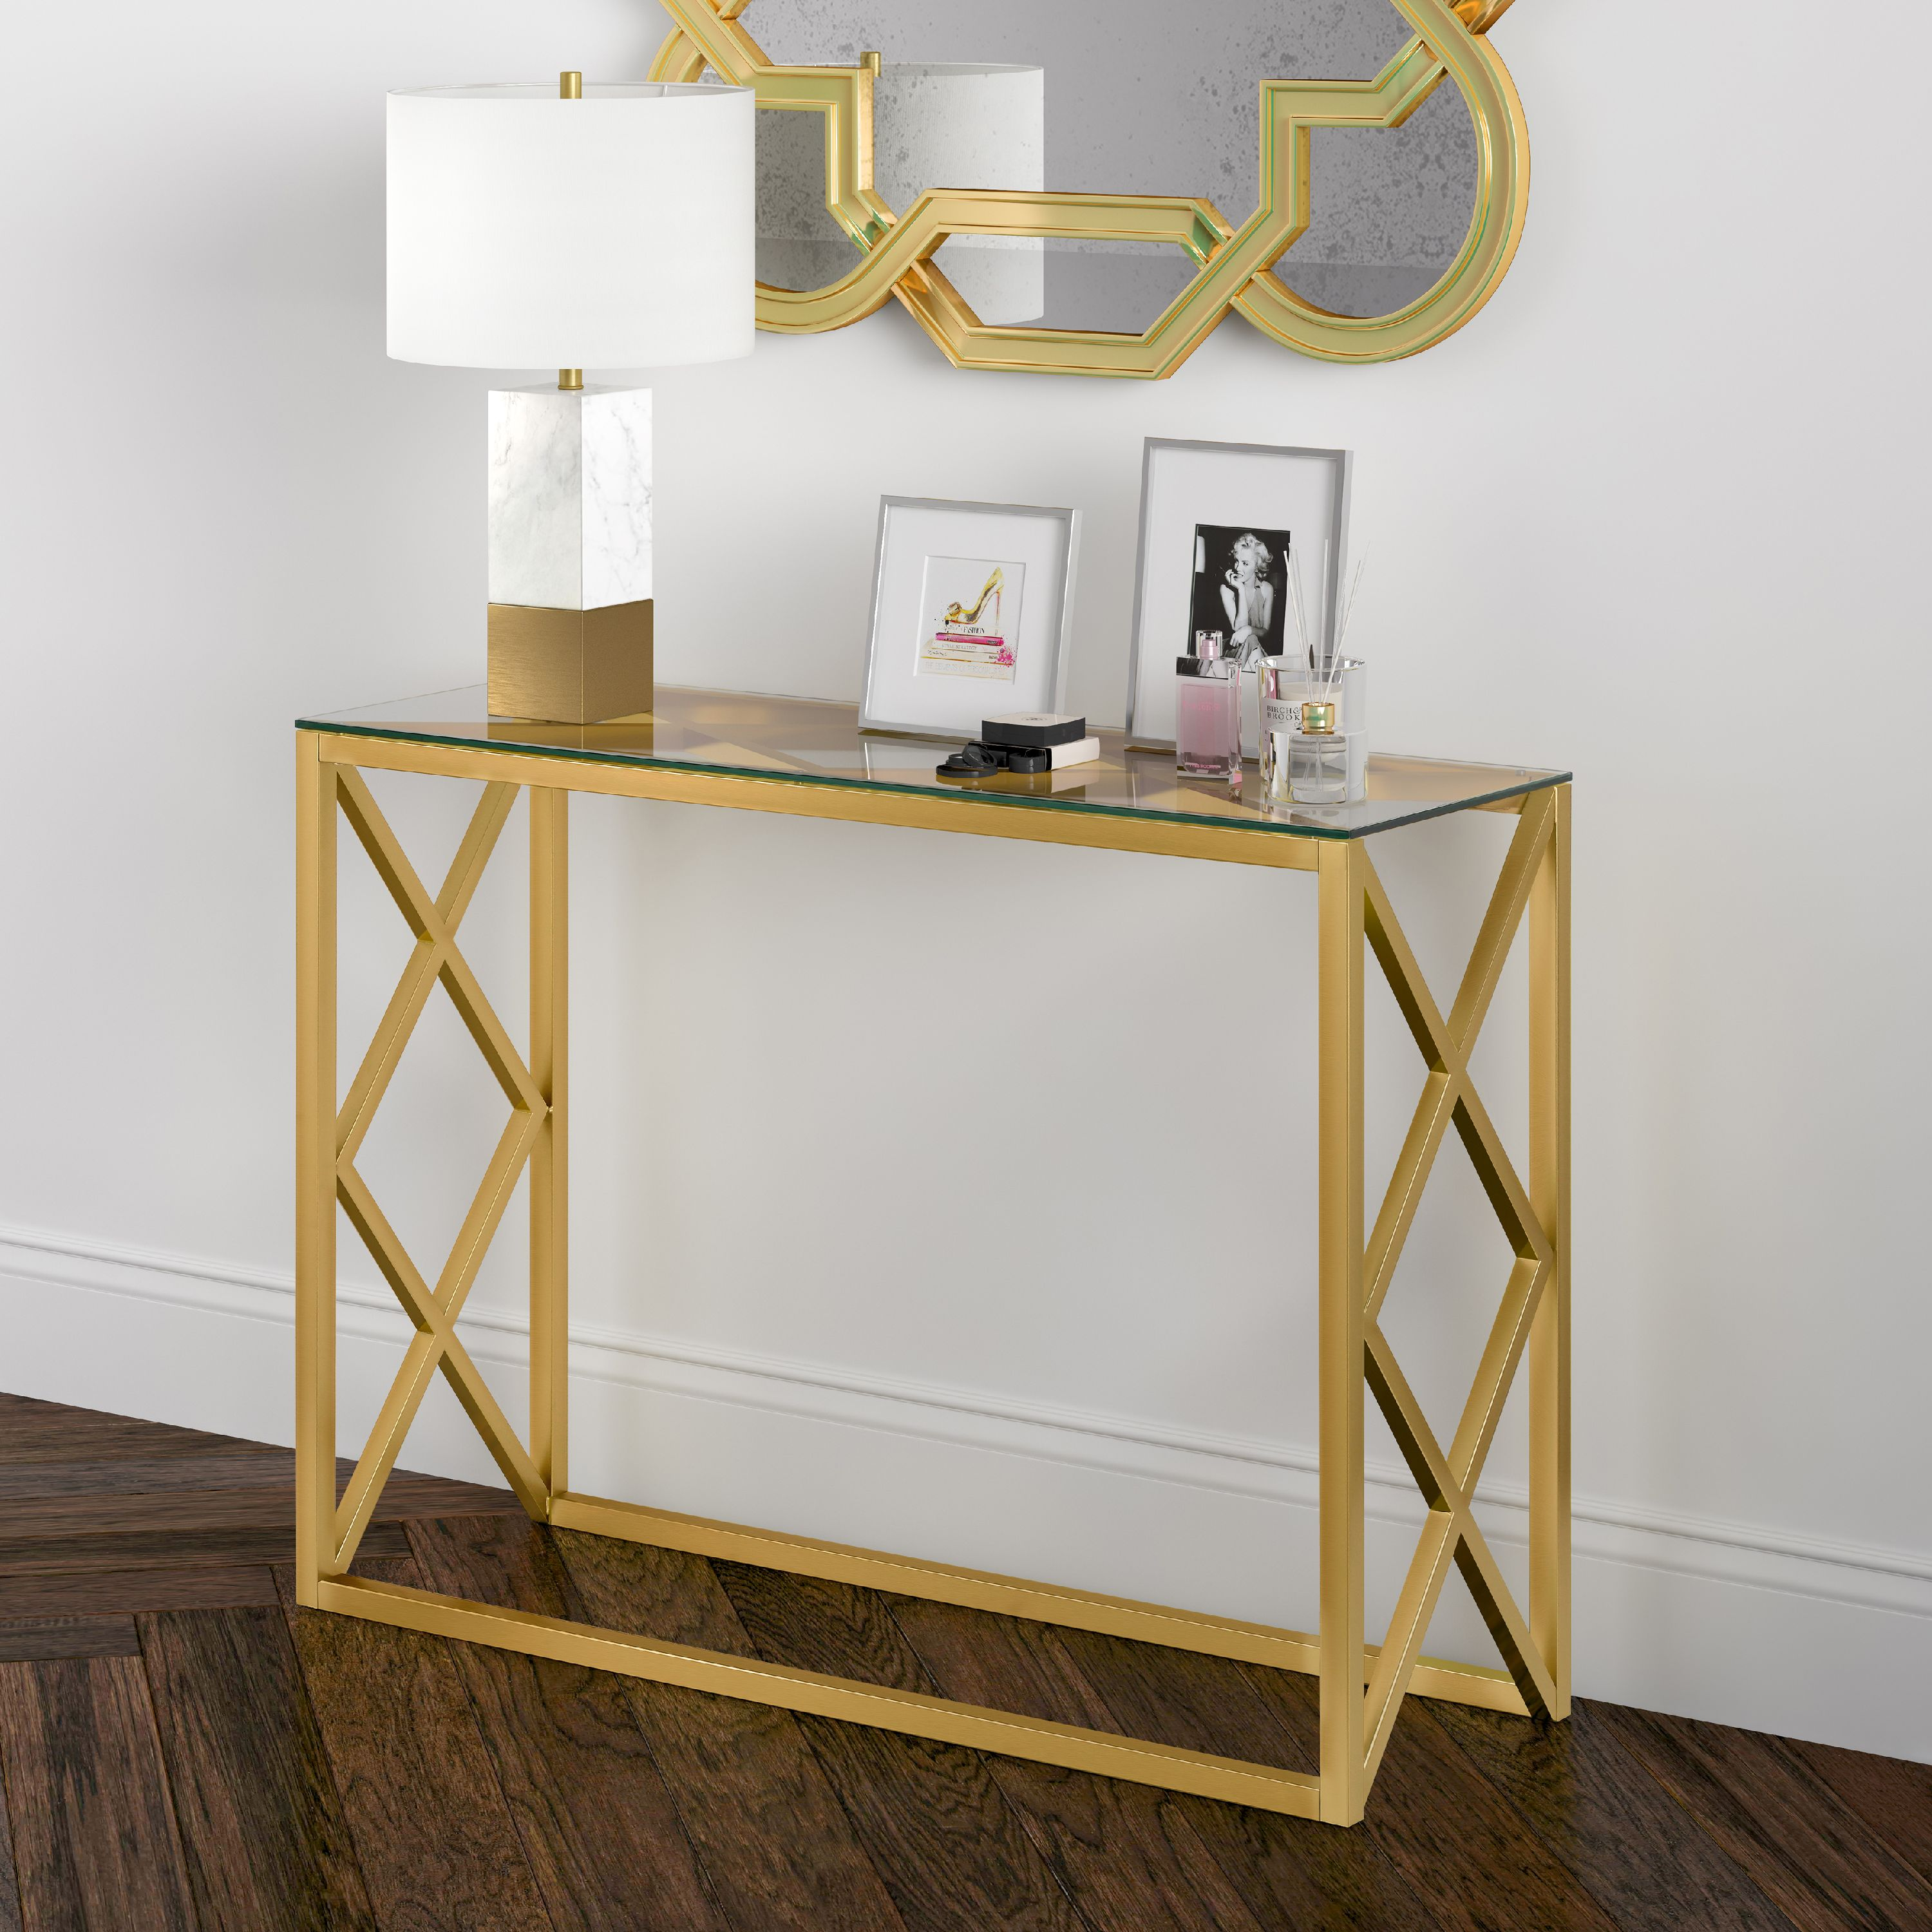 Mid Century Modern Glass Entryway Table Rectangle Accent Table Console Table In Blackened Bronze Or Brass Finish For Living Room Hallway Sofa Table 30 50 H X 42 L X 14 W Walmart Com